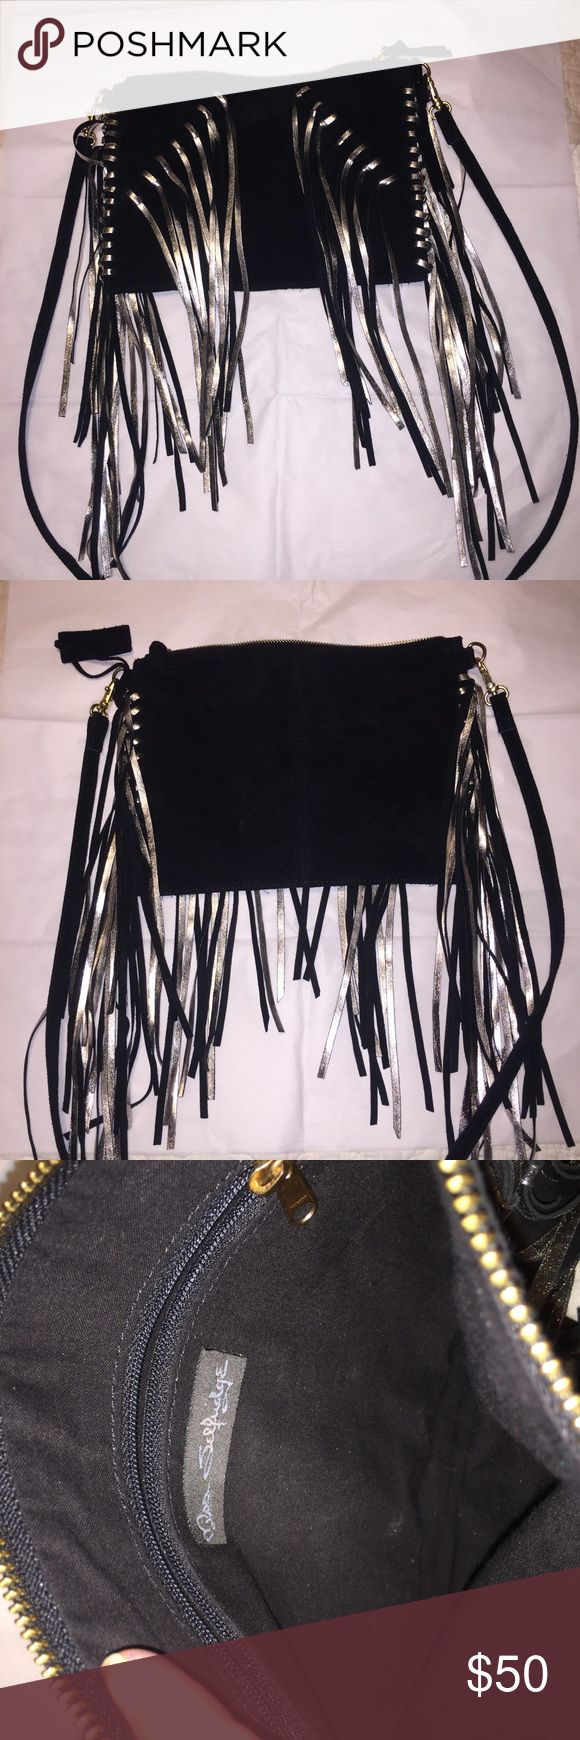 "✨Miss Selfridge Leather Fringe Cross Body Small-medium sized black suede leather bag. Bag includes inner zipper and detachable strap. It measures 11"" across and 8""high. x Miss Selfridge Bags Crossbody Bags"